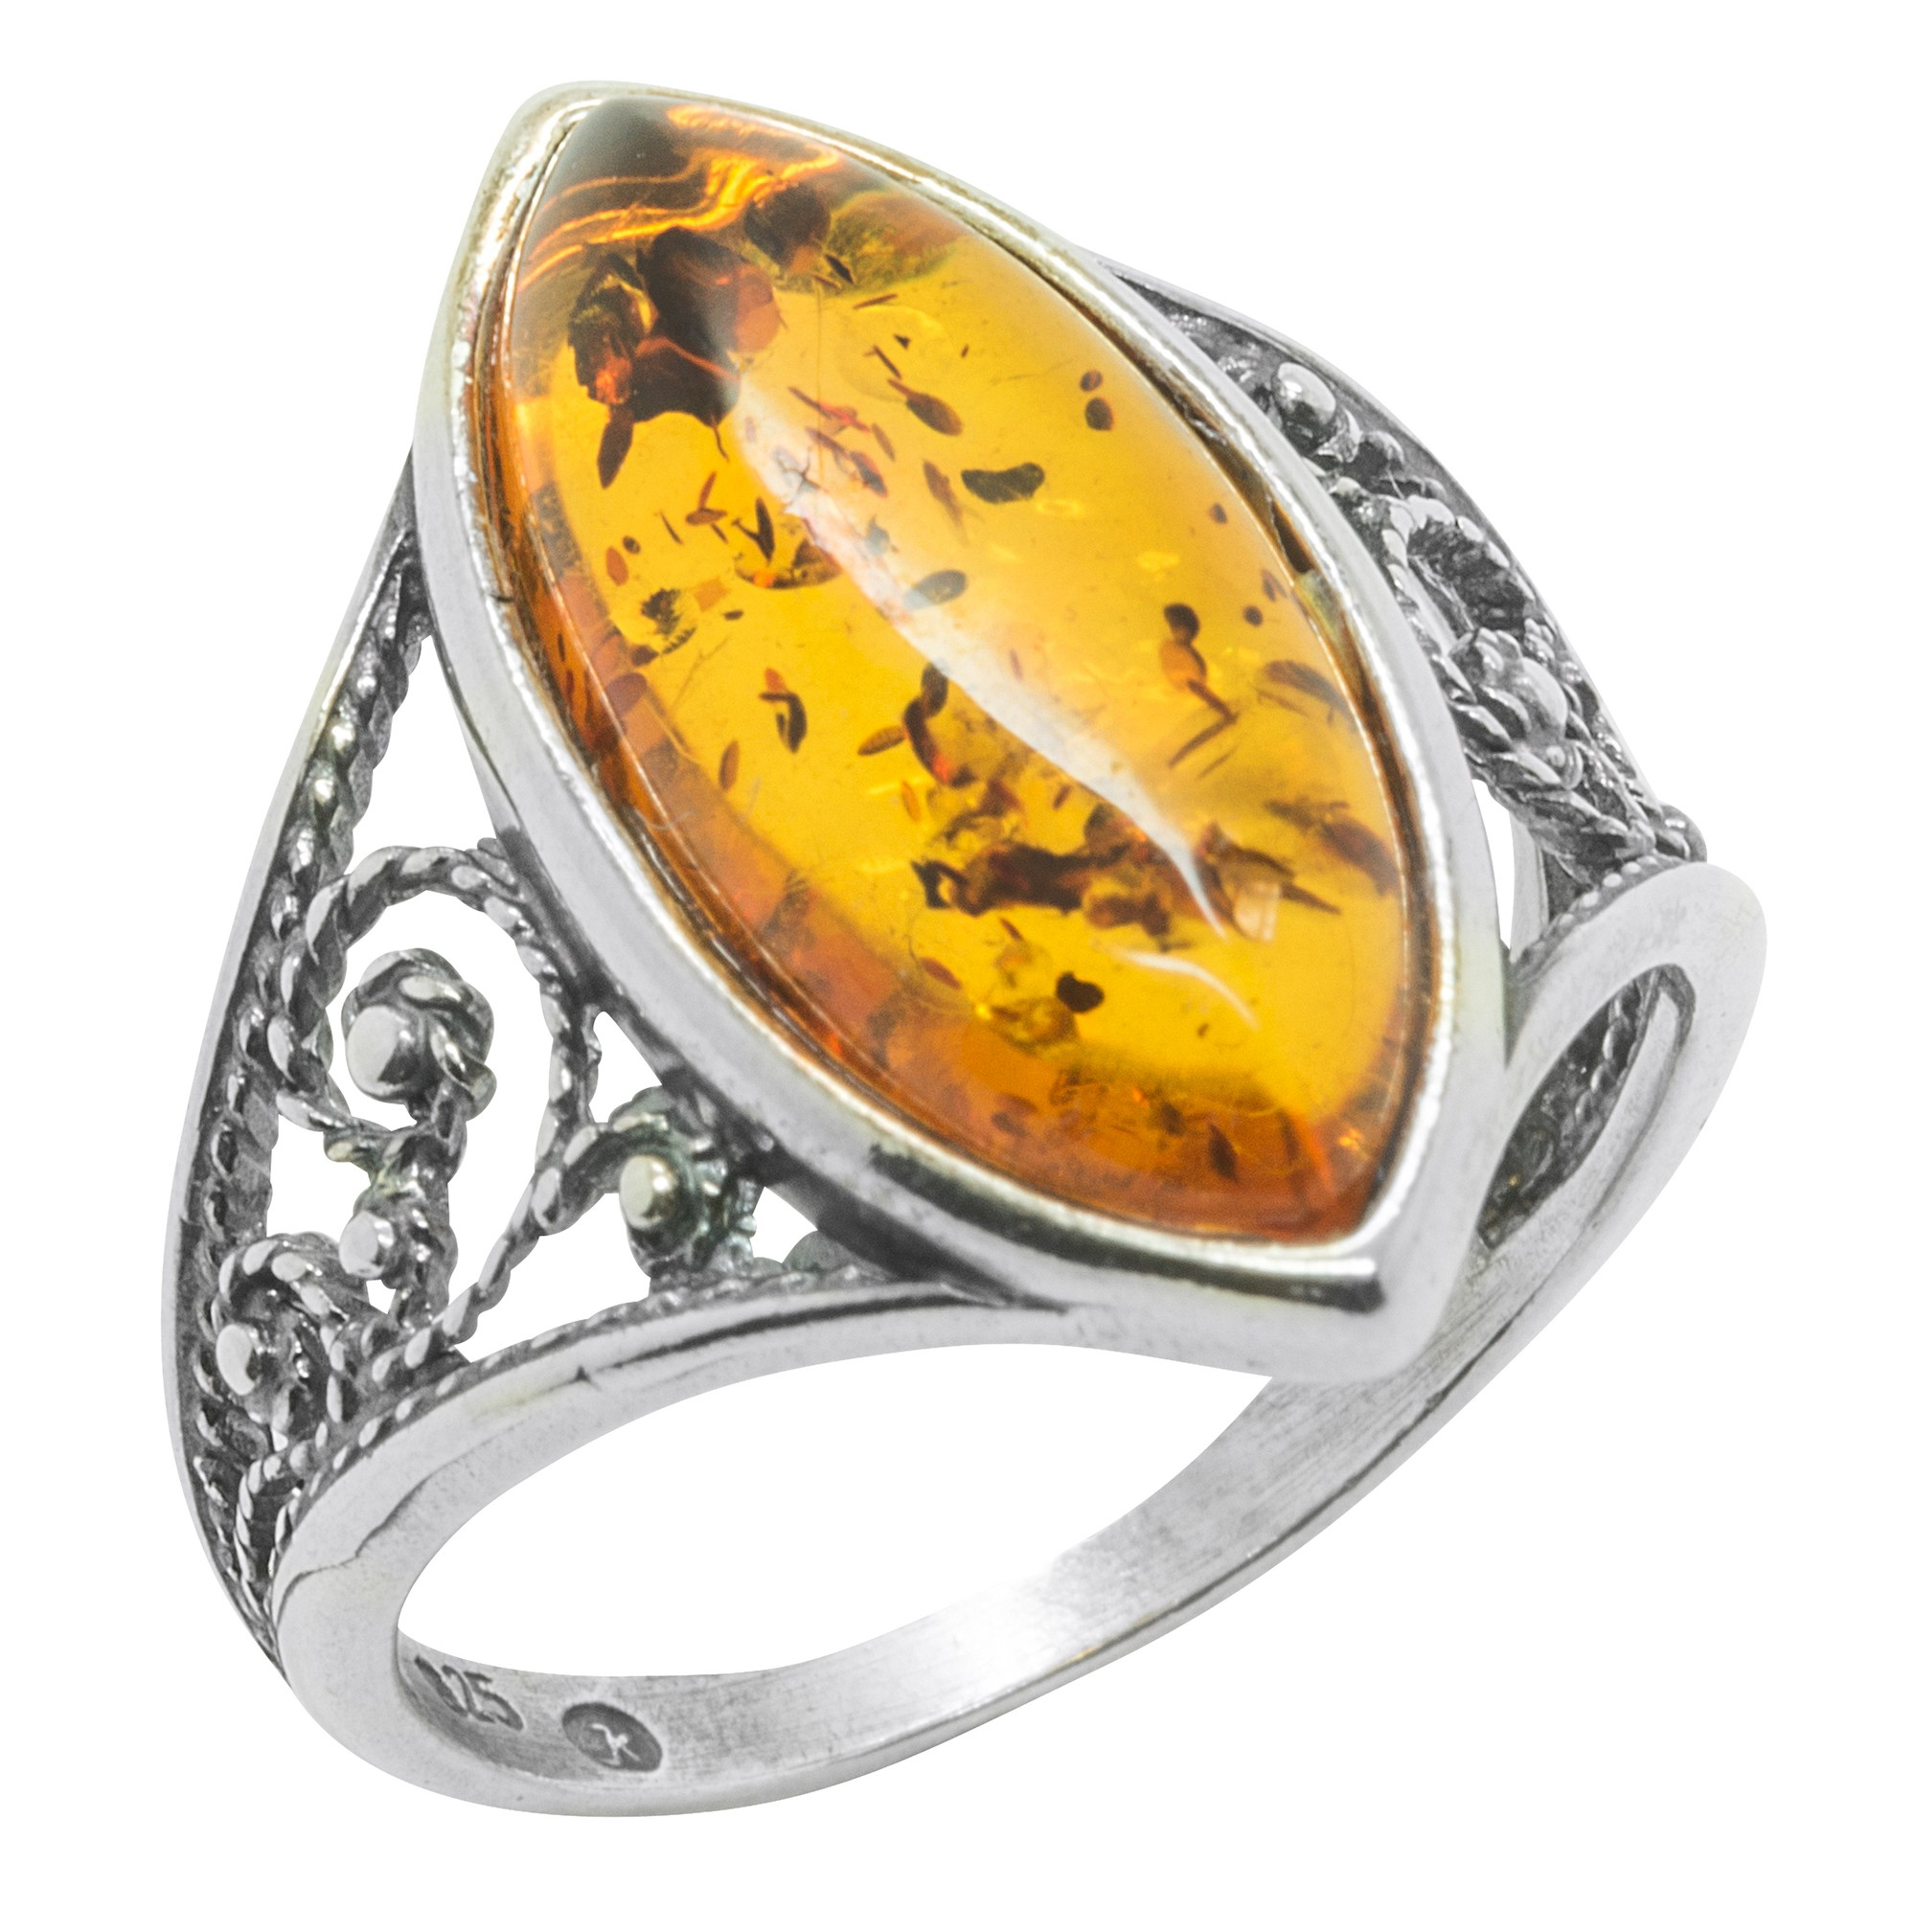 by ring rustic opal buy sterling rings a hammered hand opa made silver crazyassjewelry engagement custom amber welo blue band